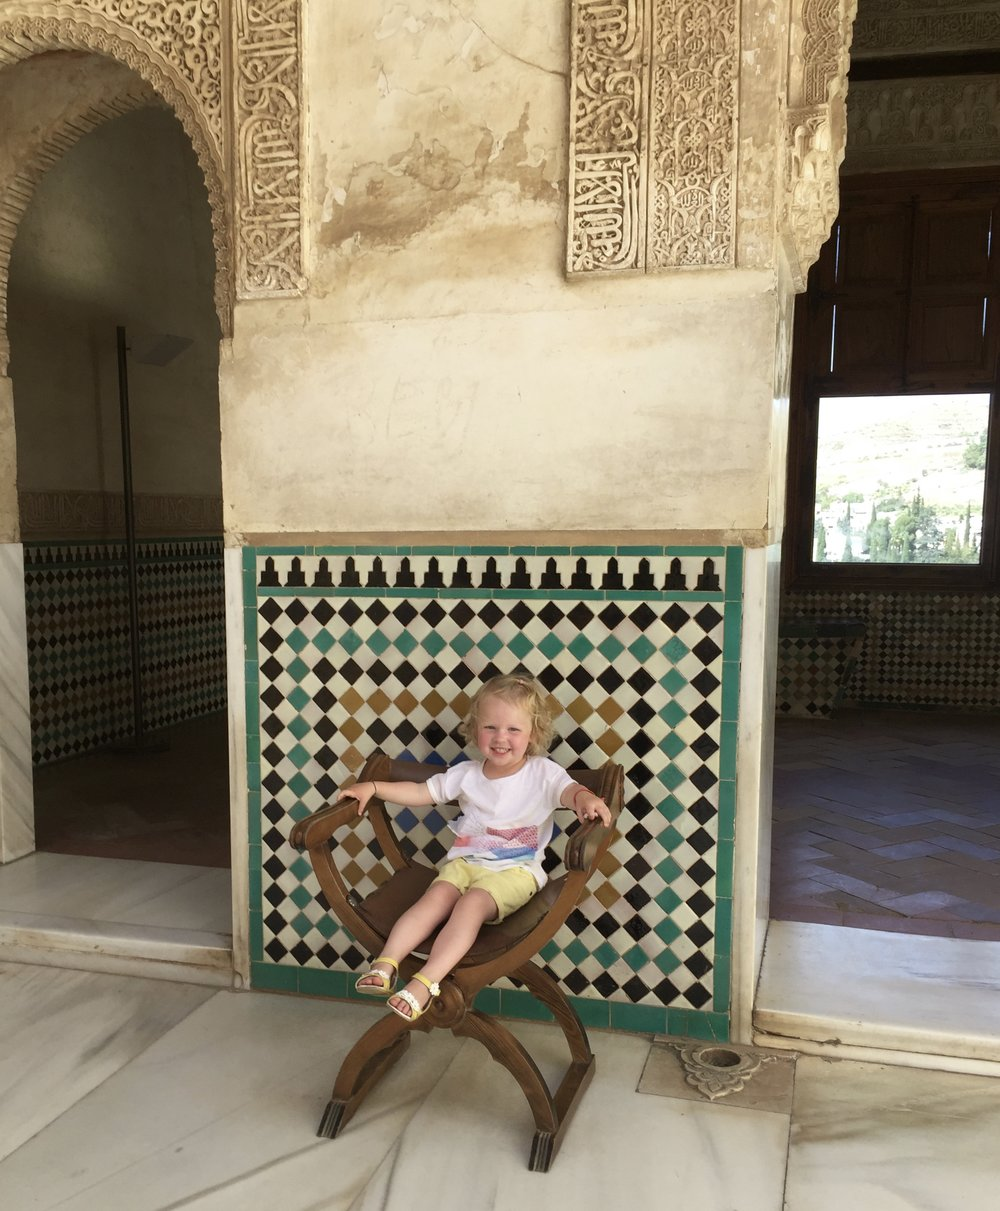 We struggled up to the Alhambra in over 40 degrees heat but we made it, and with cheeky grins on our faces too!